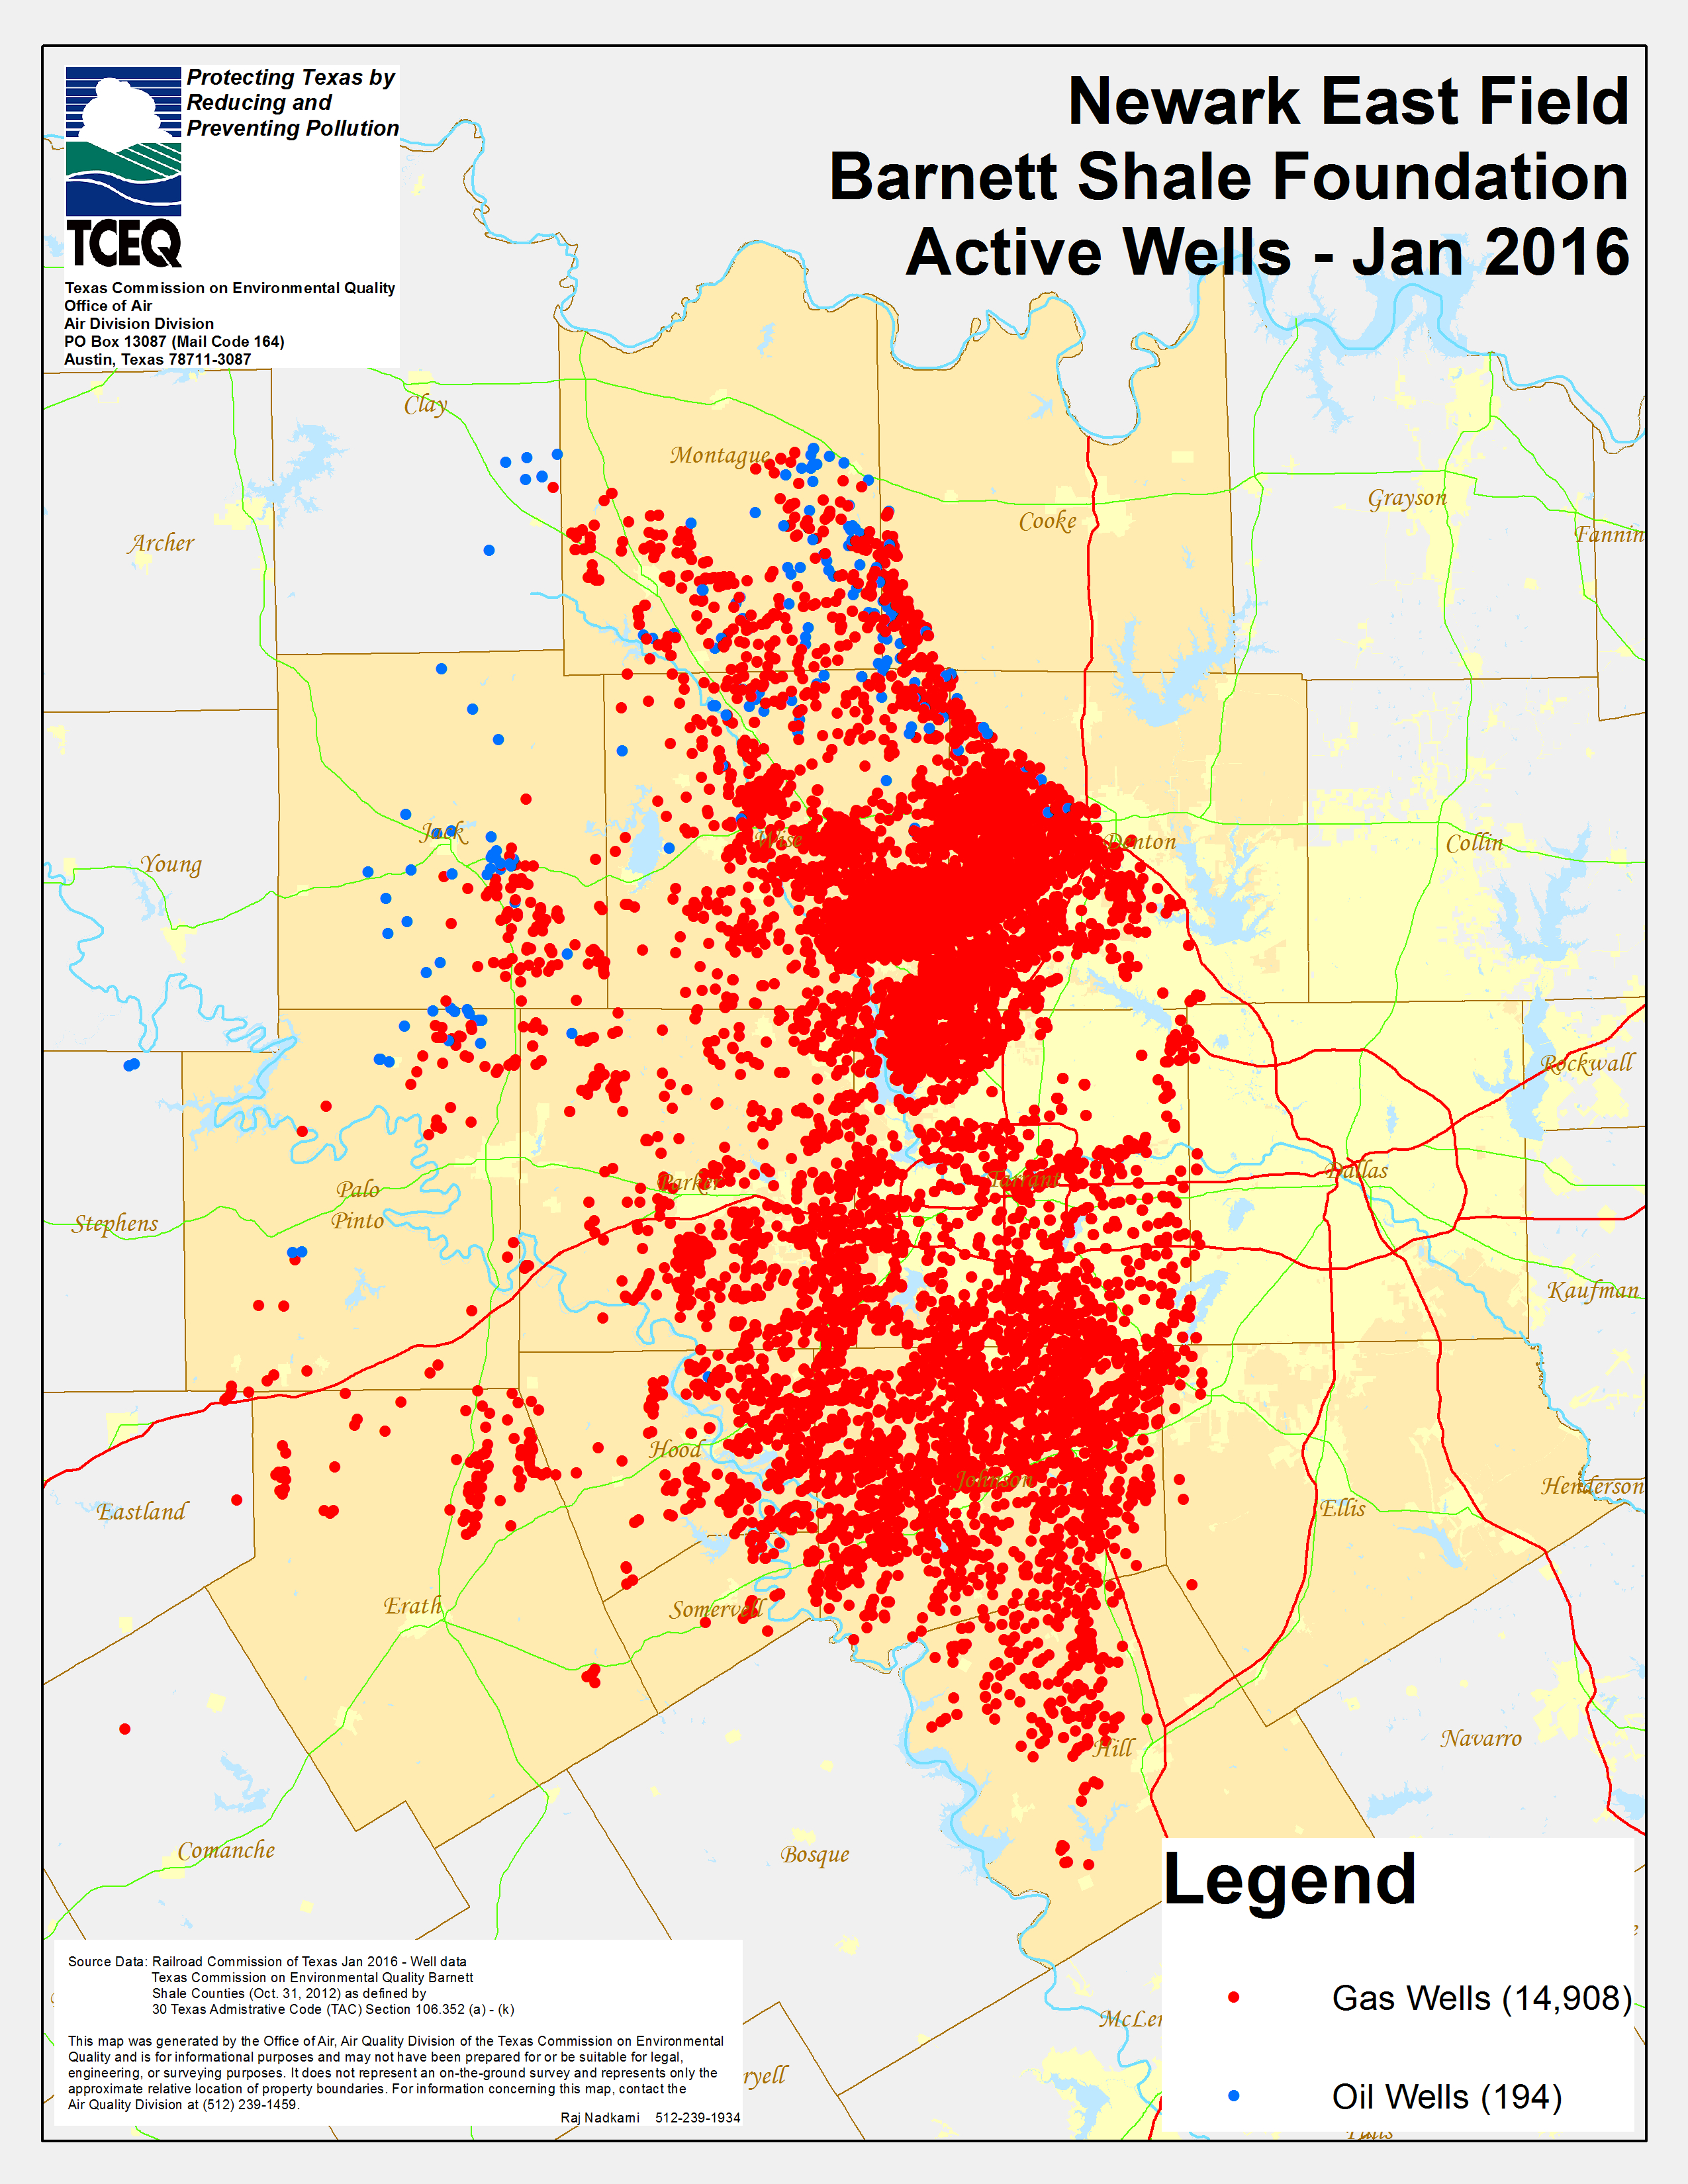 Barnett Shale Maps And Charts - Tceq - Www.tceq.texas.gov - Texas Oil And Gas Well Map